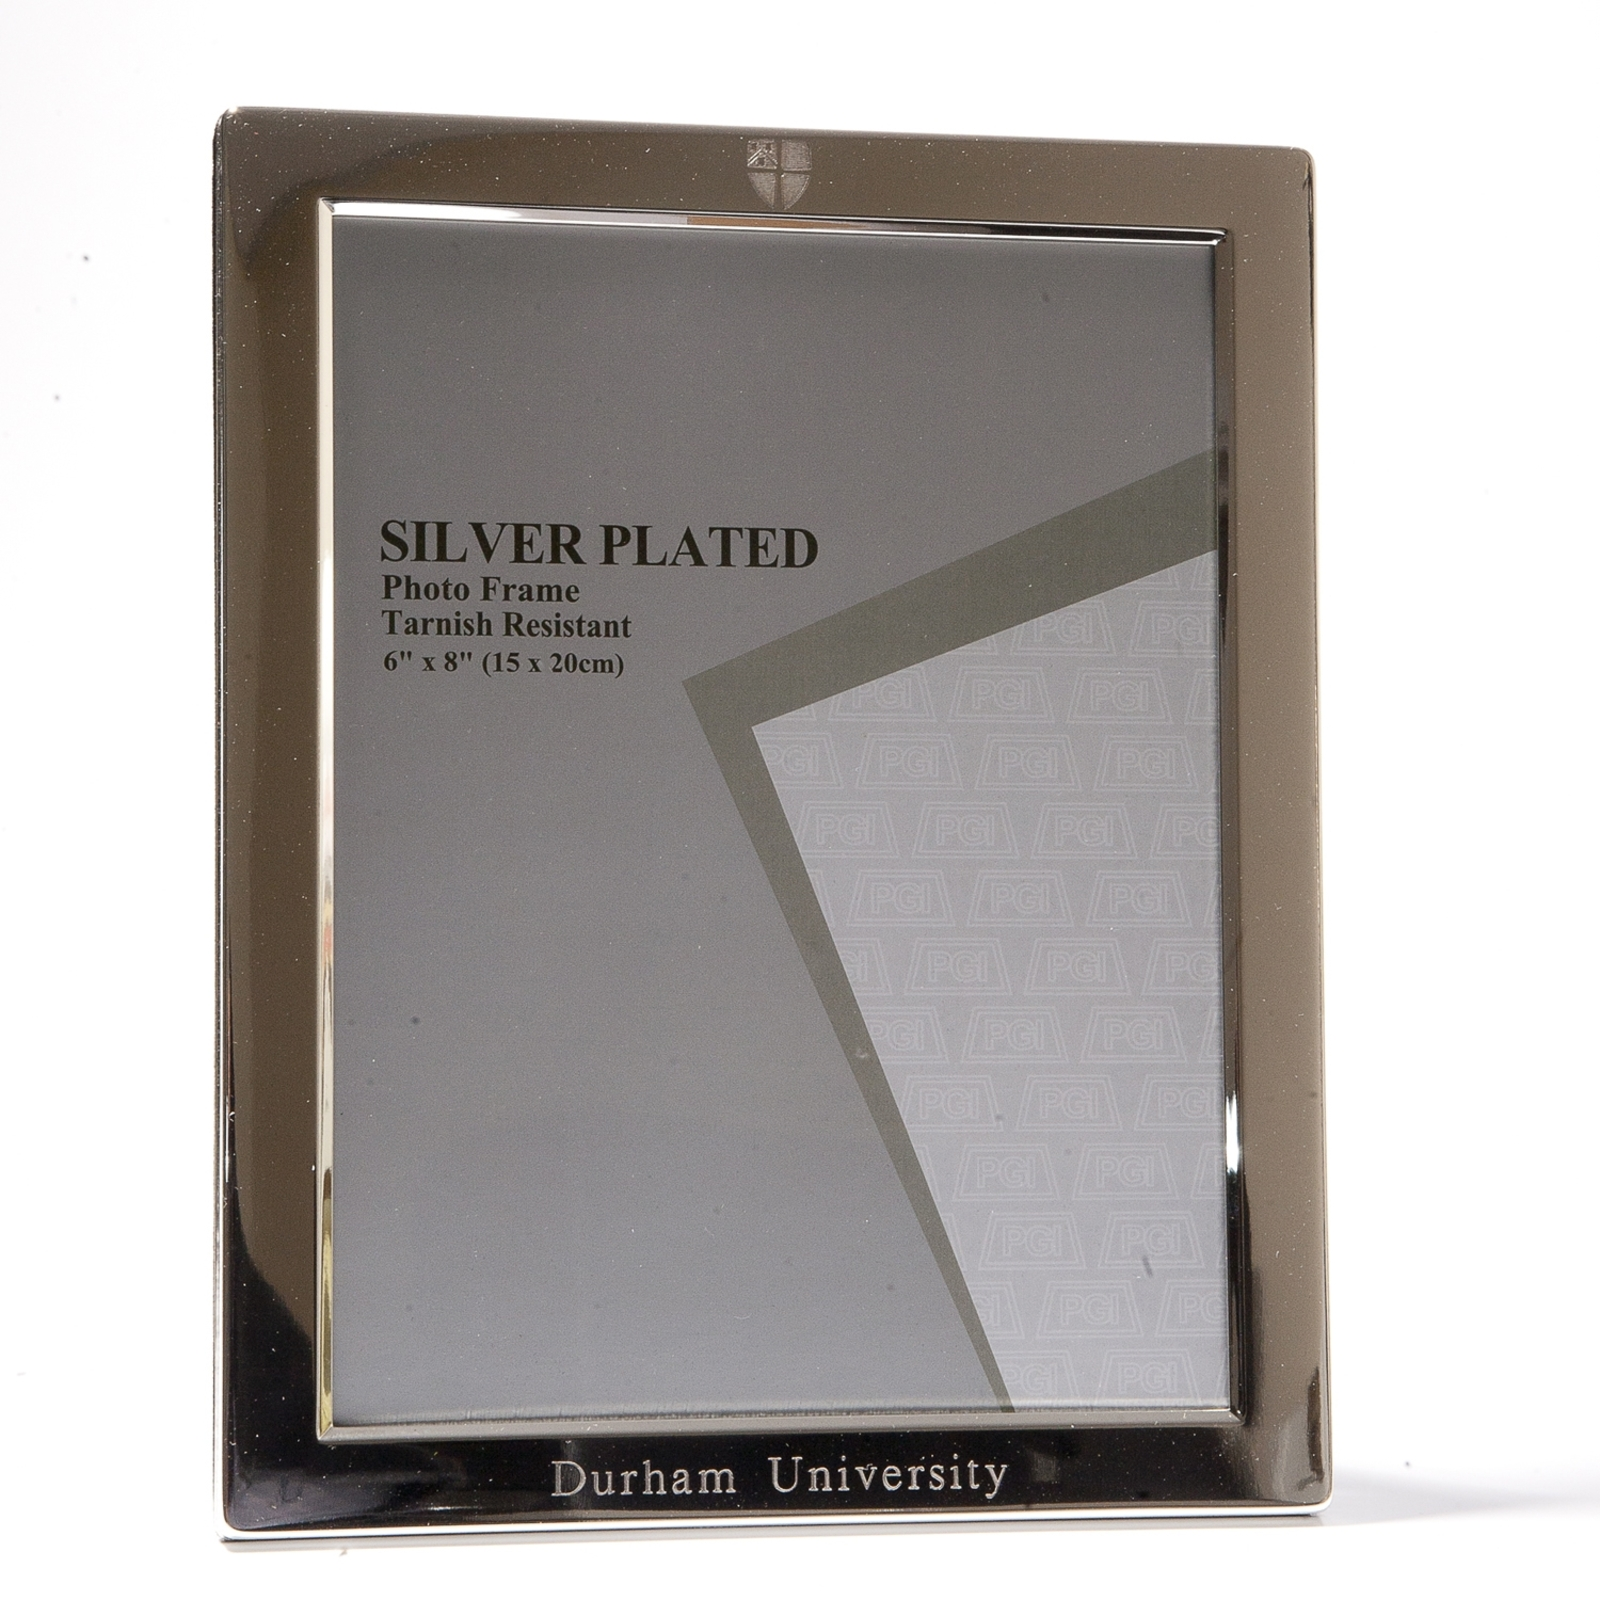 Large Frame Picture Silver Plated Photo Frame Large At Durham University Official